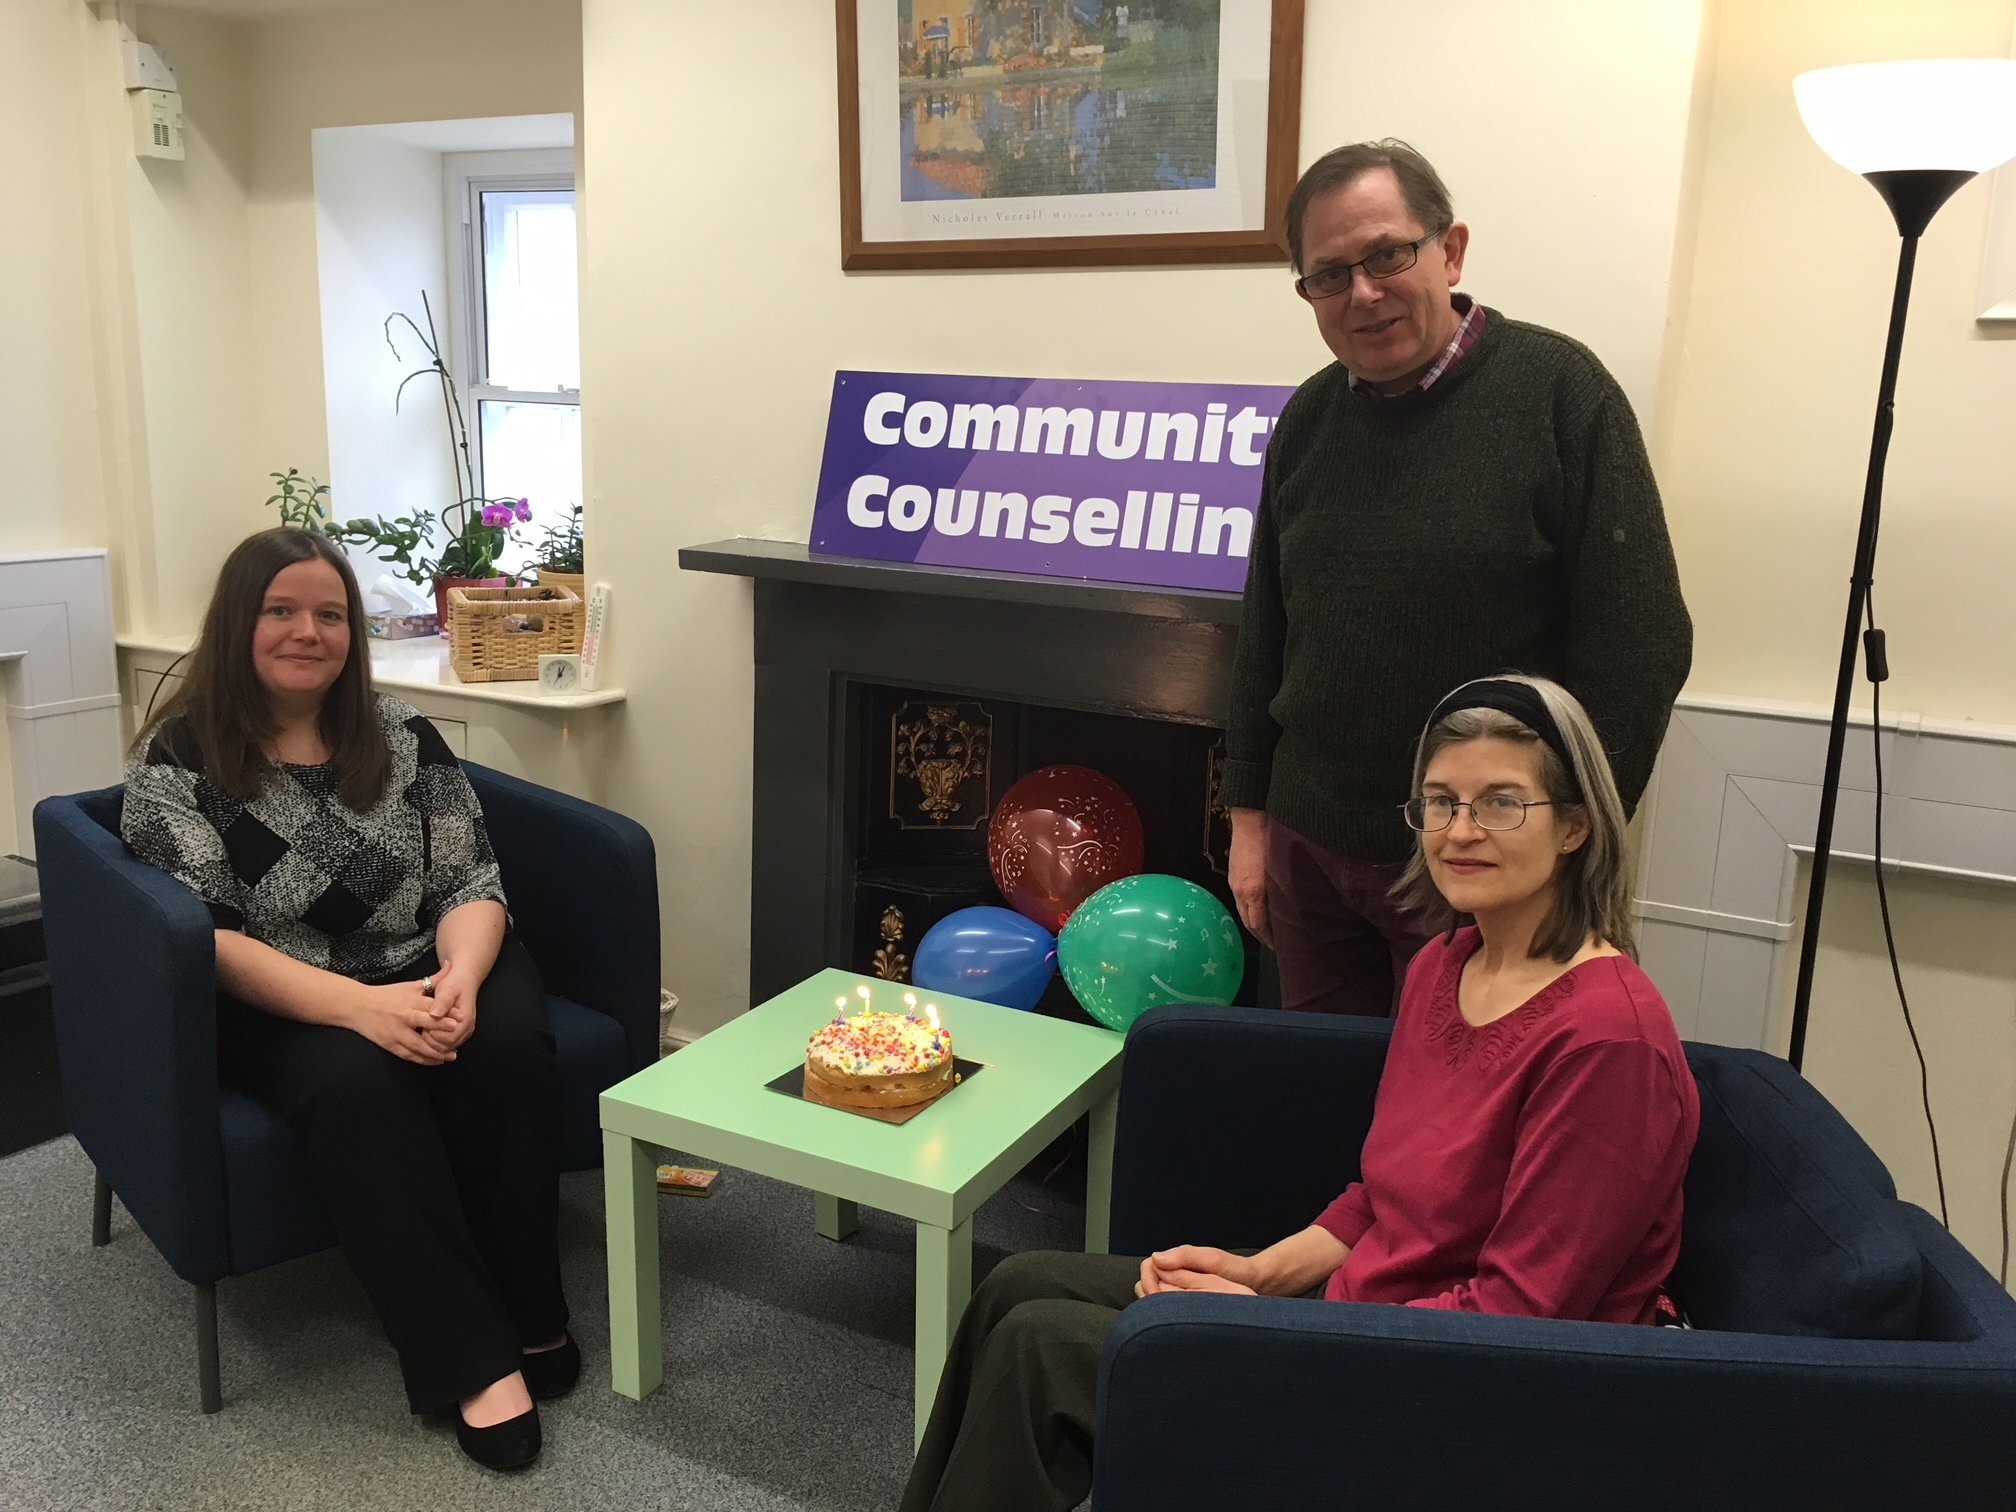 Community Counselling, which is also celebrating its fifth anniversary this month, ans is now launching a young carers service to provide free counselling for children and young people between the ages of eight and 18 who are caring for loved ones in the